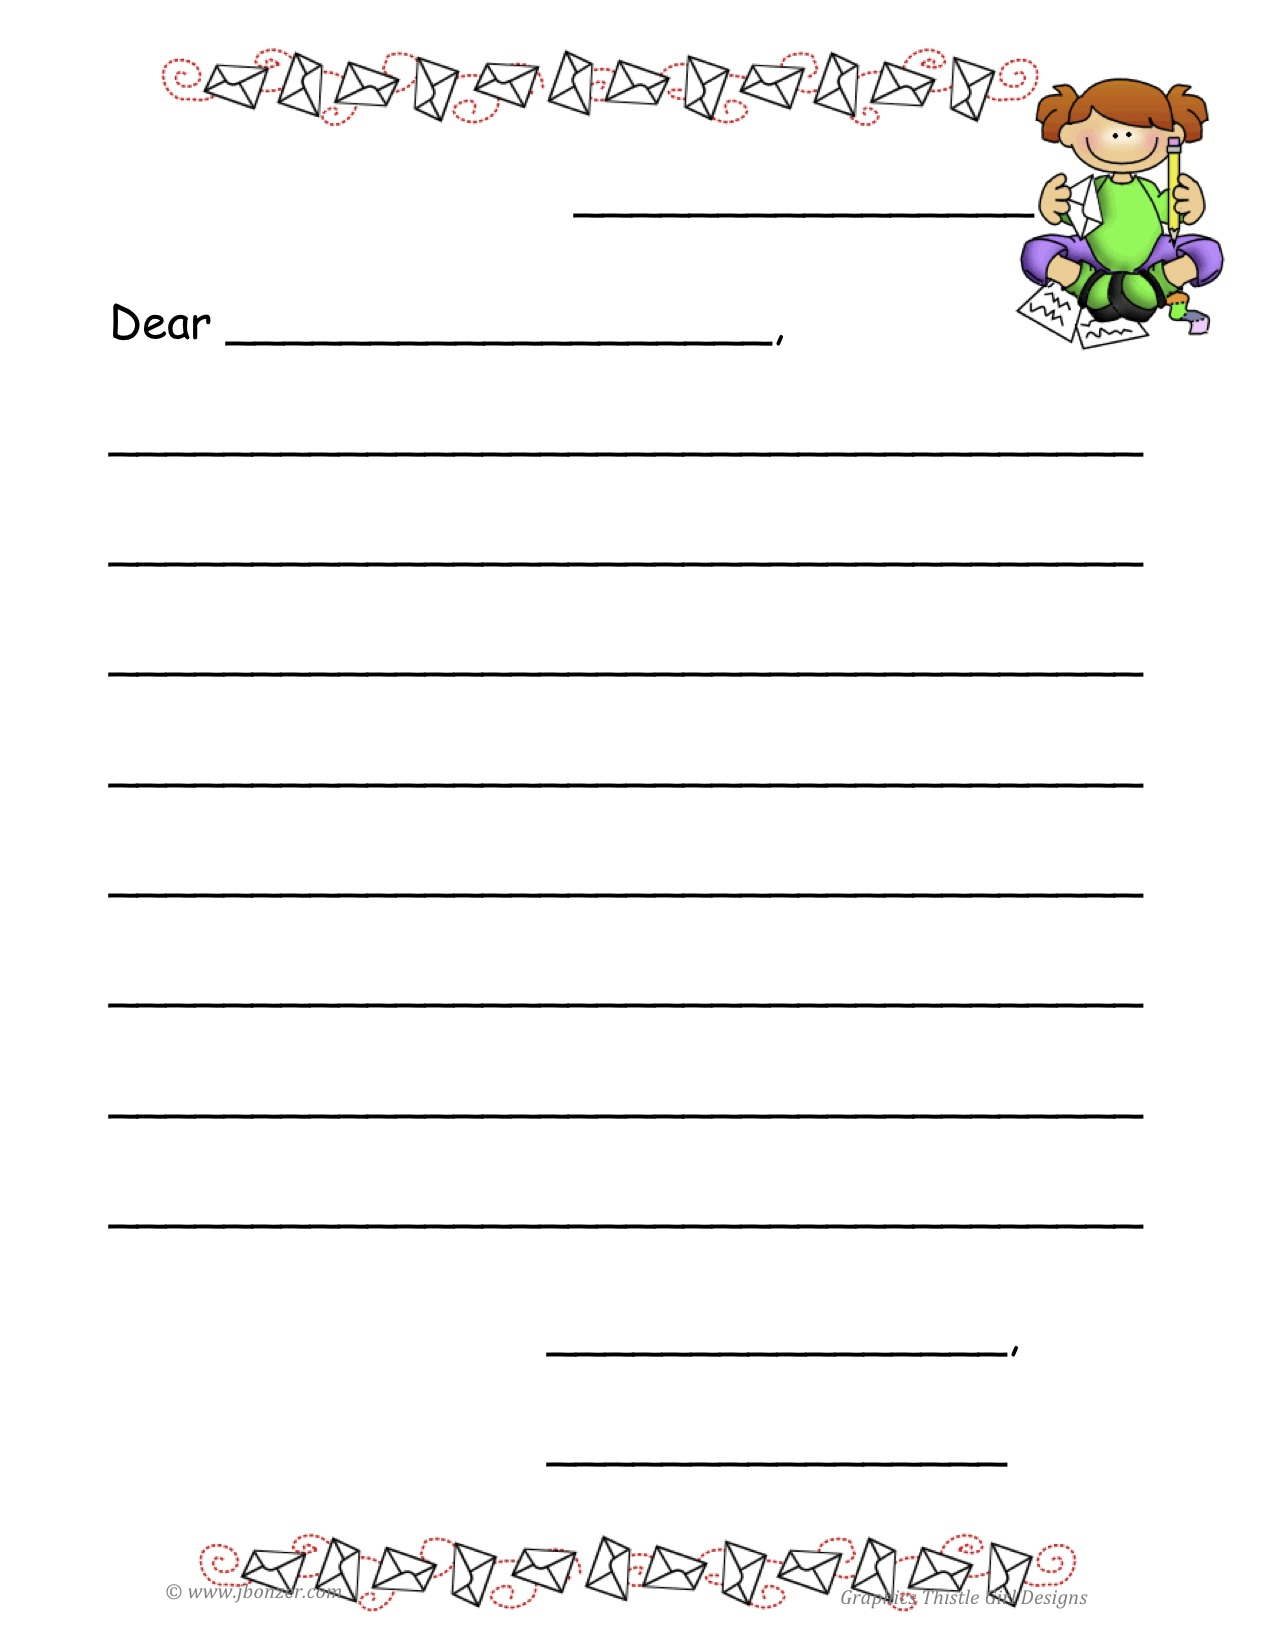 Letter Templates For Kids from www.printablee.com